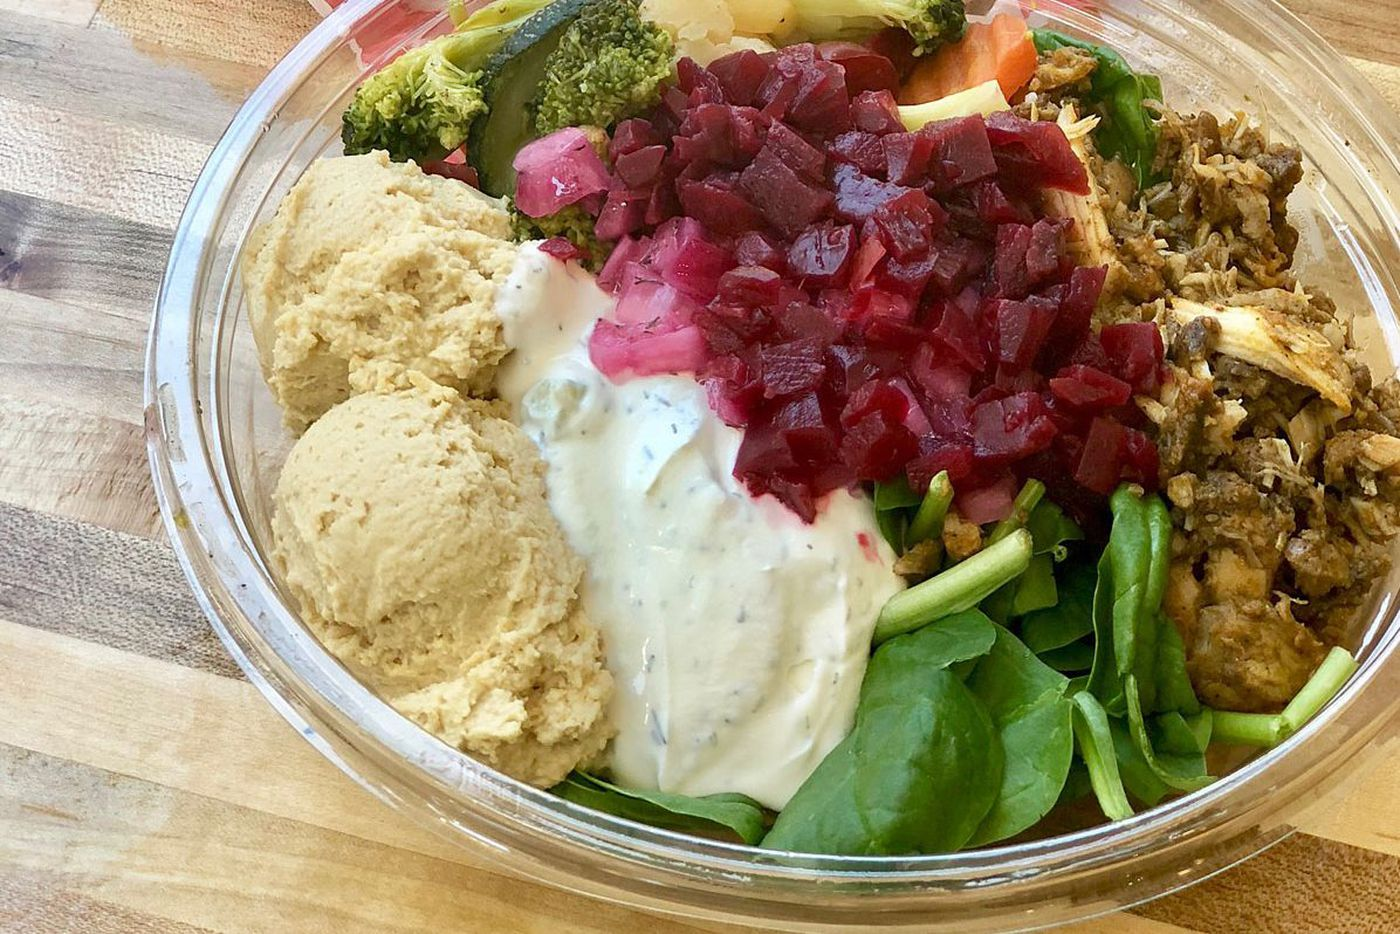 Hummus options keep spreading | Let's Eat